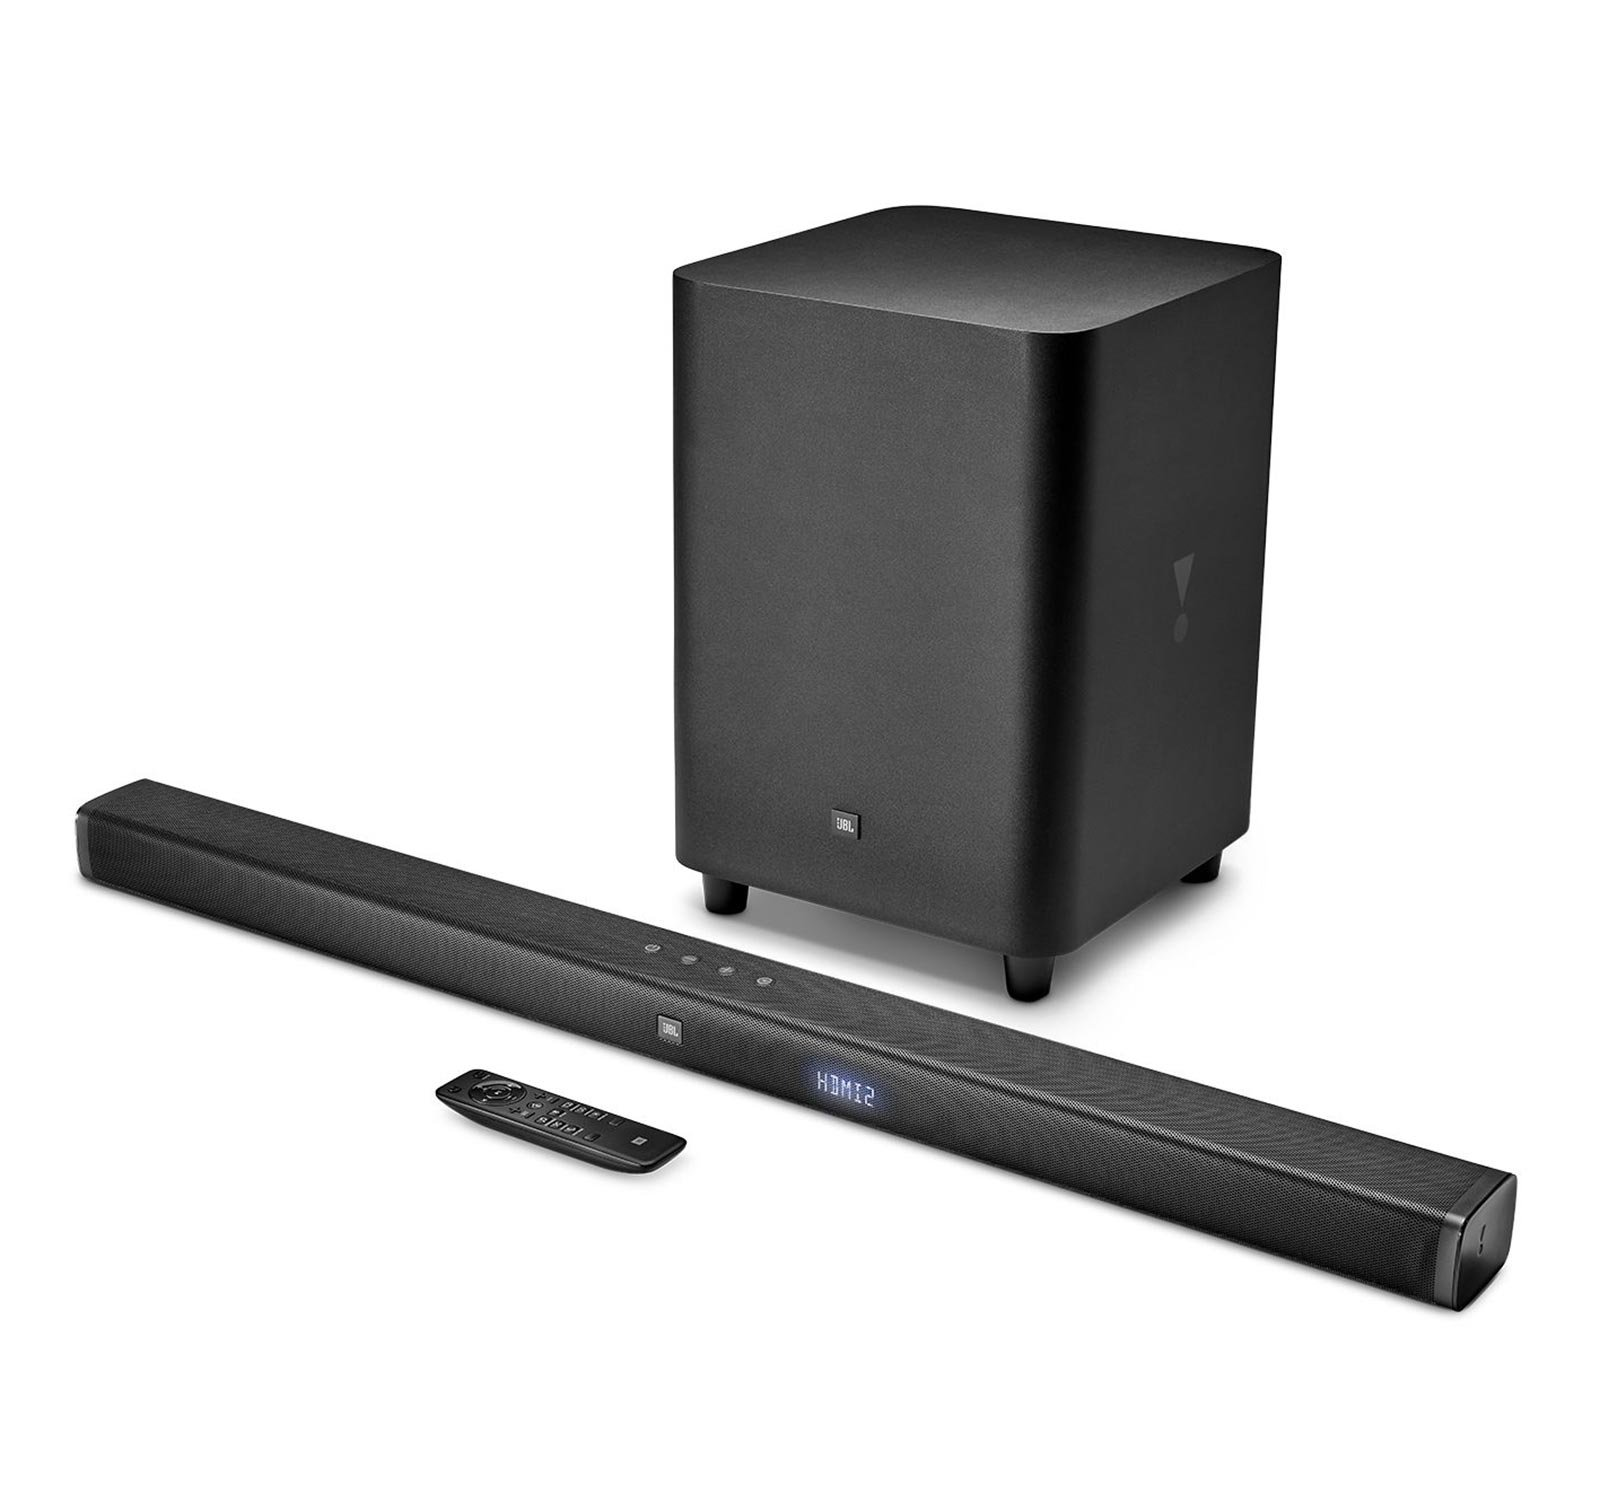 Cheap Jbl Wireless Subwoofer Find Deals On Electronics Gt Tv Video Home Audio Speakers Subwoofers Get Quotations Bar 31 Theater Starter System With Soundbar And Bluetooth